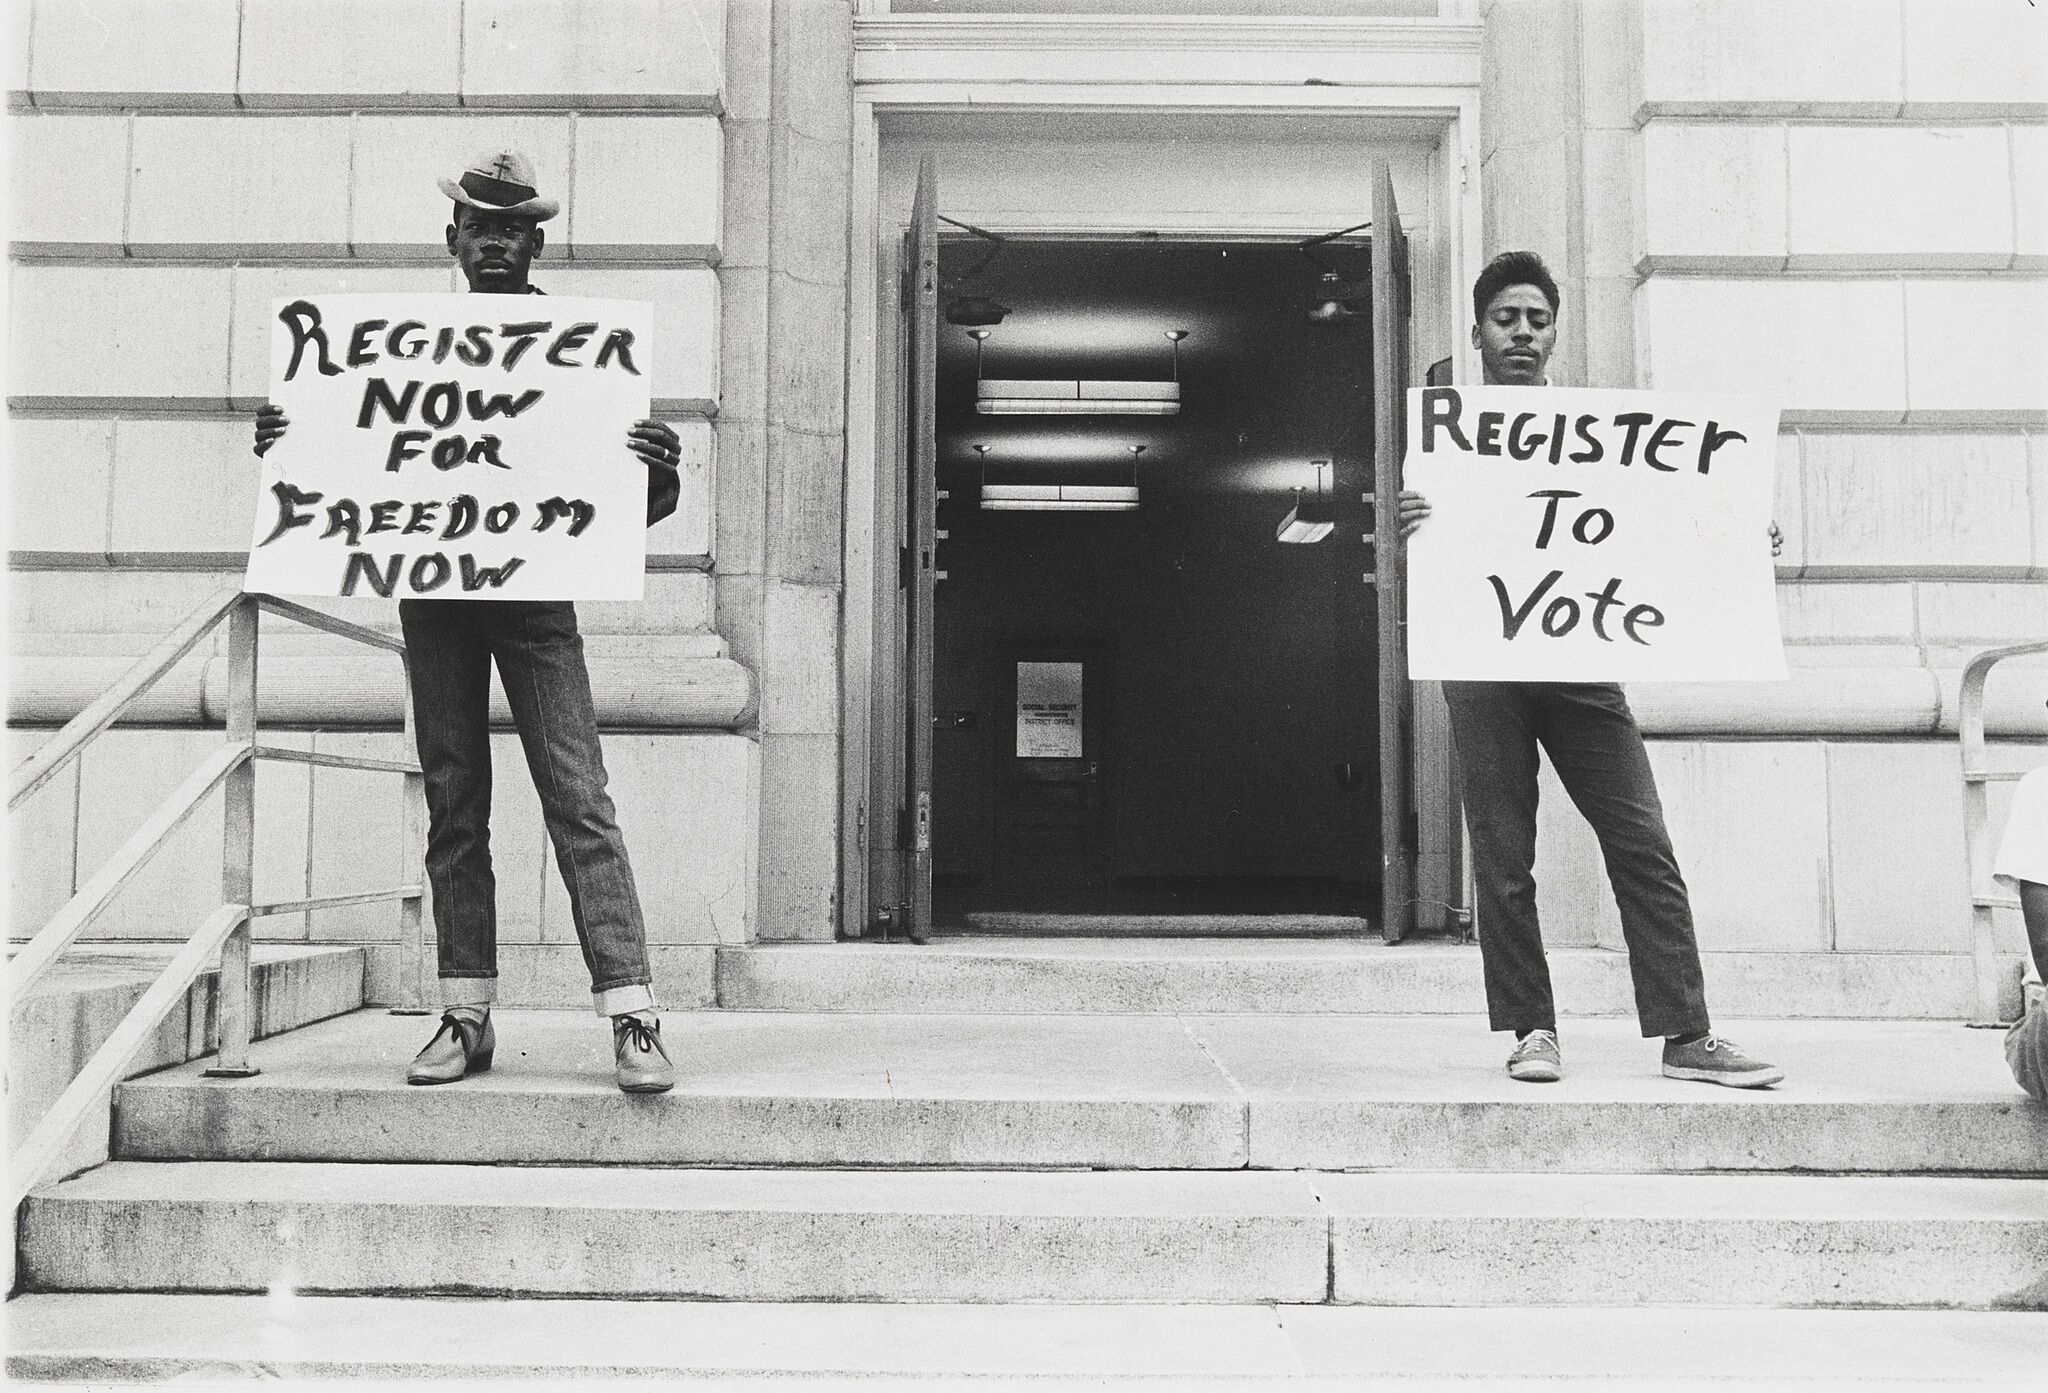 """Two people holding signs that say """"Register now for freedom now"""" and """"Register to vote"""""""